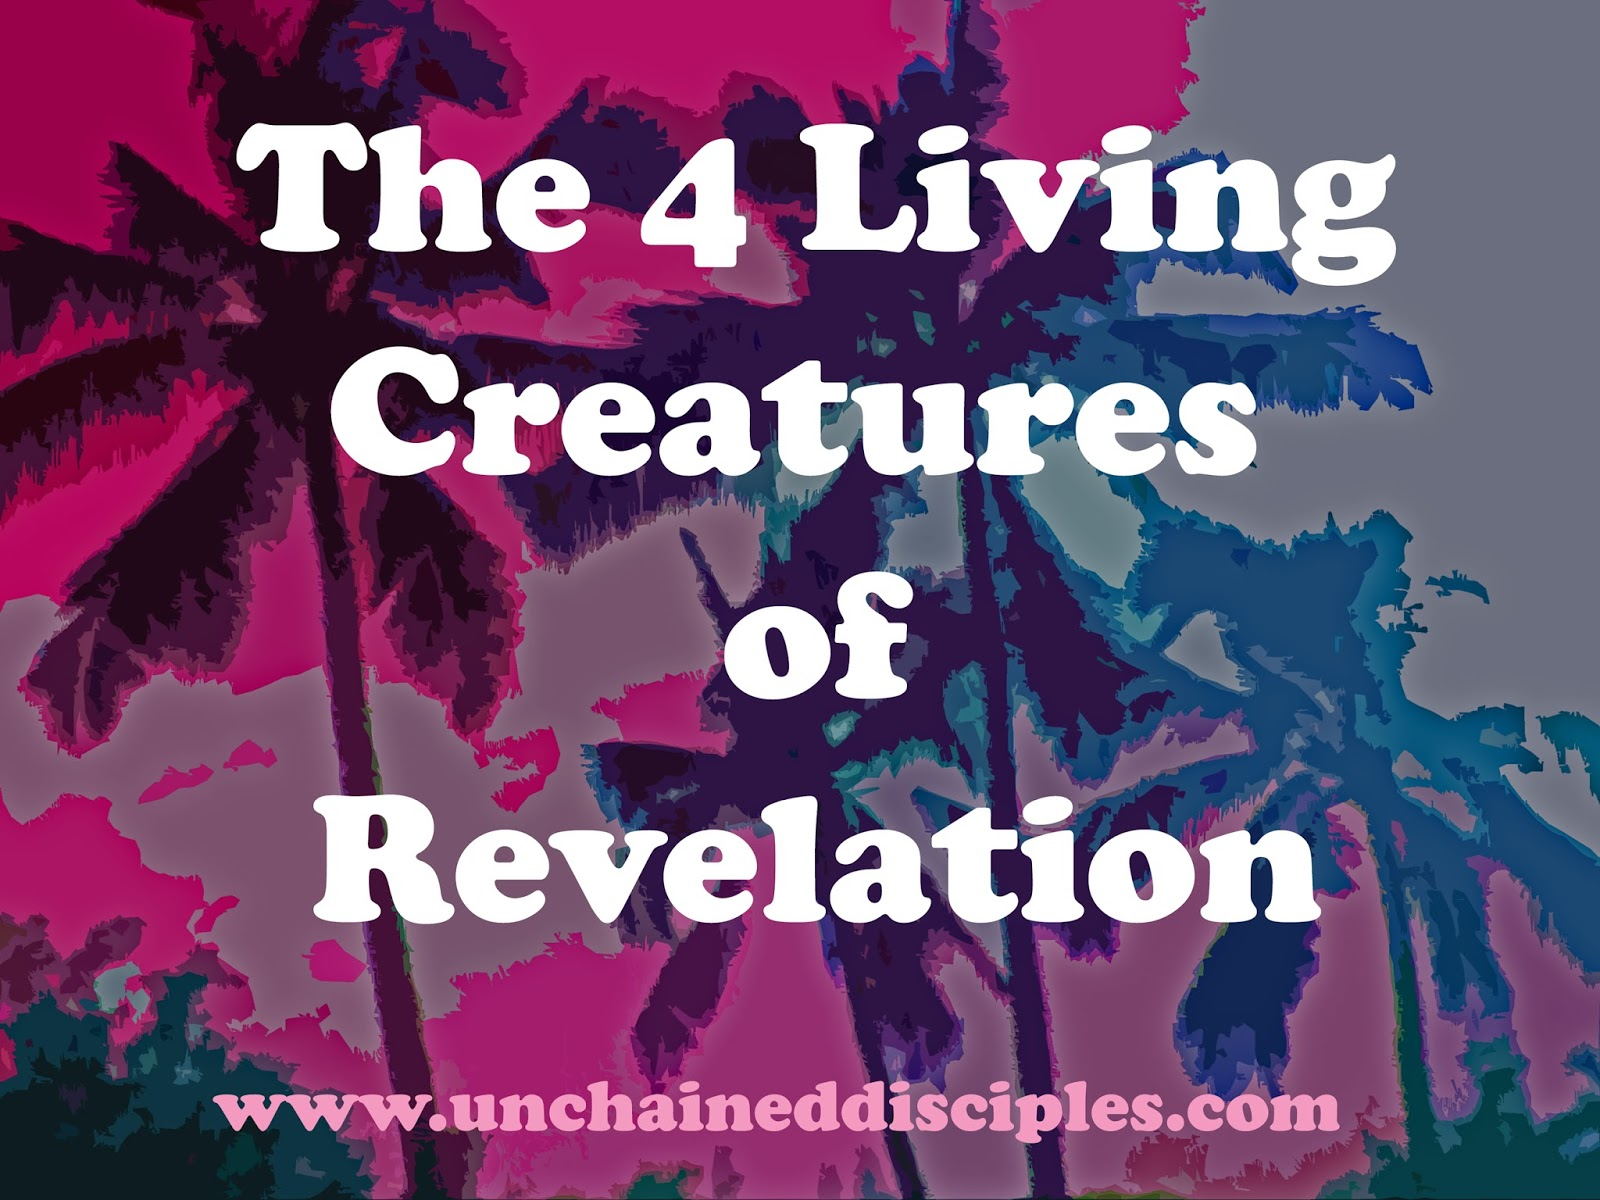 Unchained Disciples : The 4 Living Creatures In Revelation